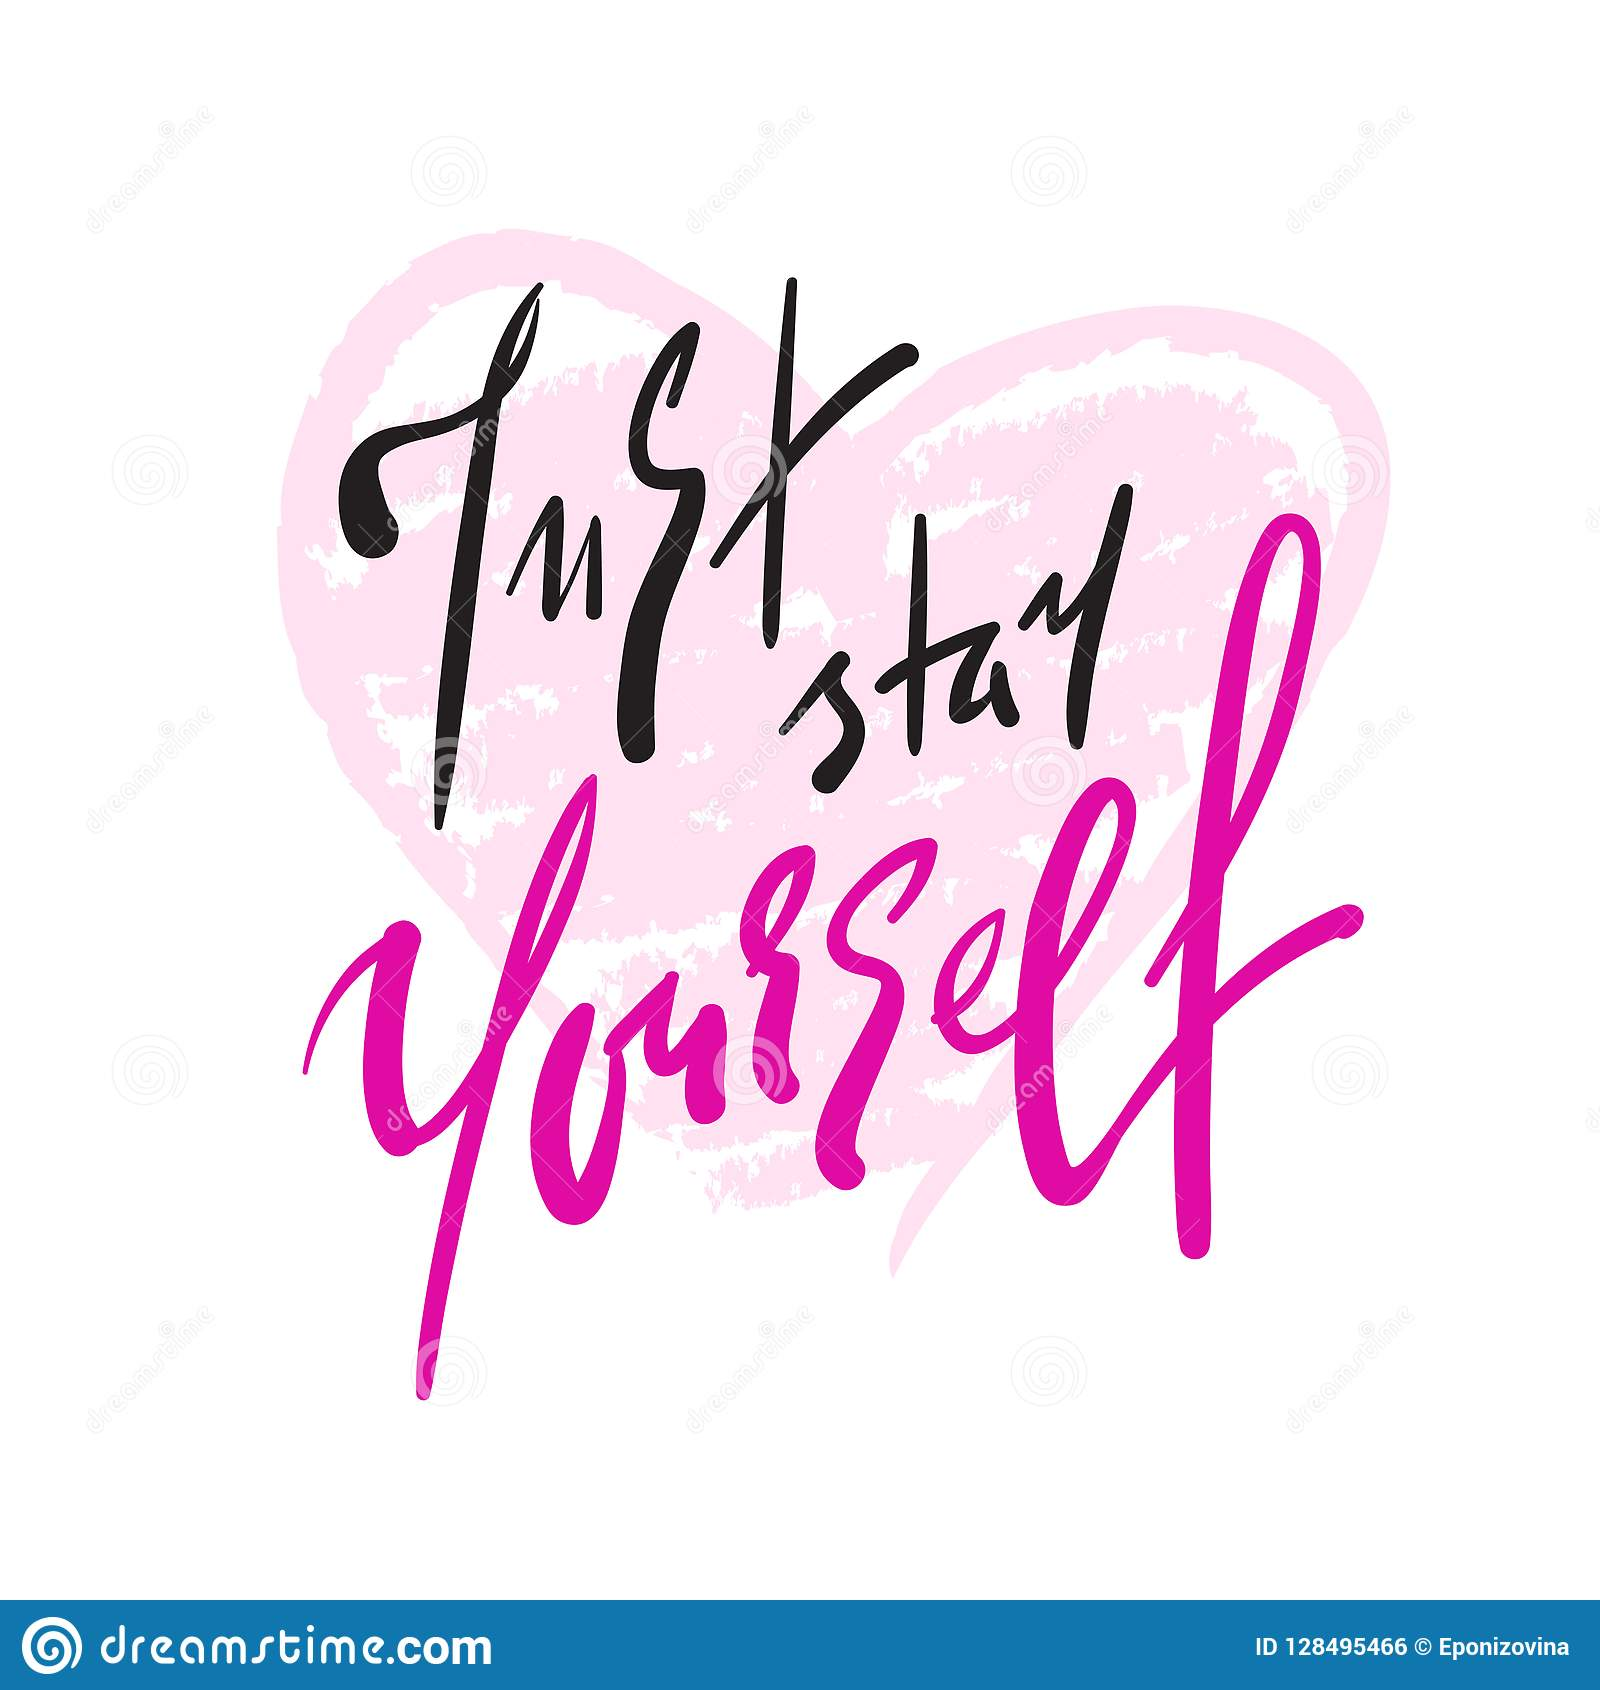 Just stay yourself - simple inspire and motivational quote. Hand drawn beautiful lettering. Print for inspirational poster